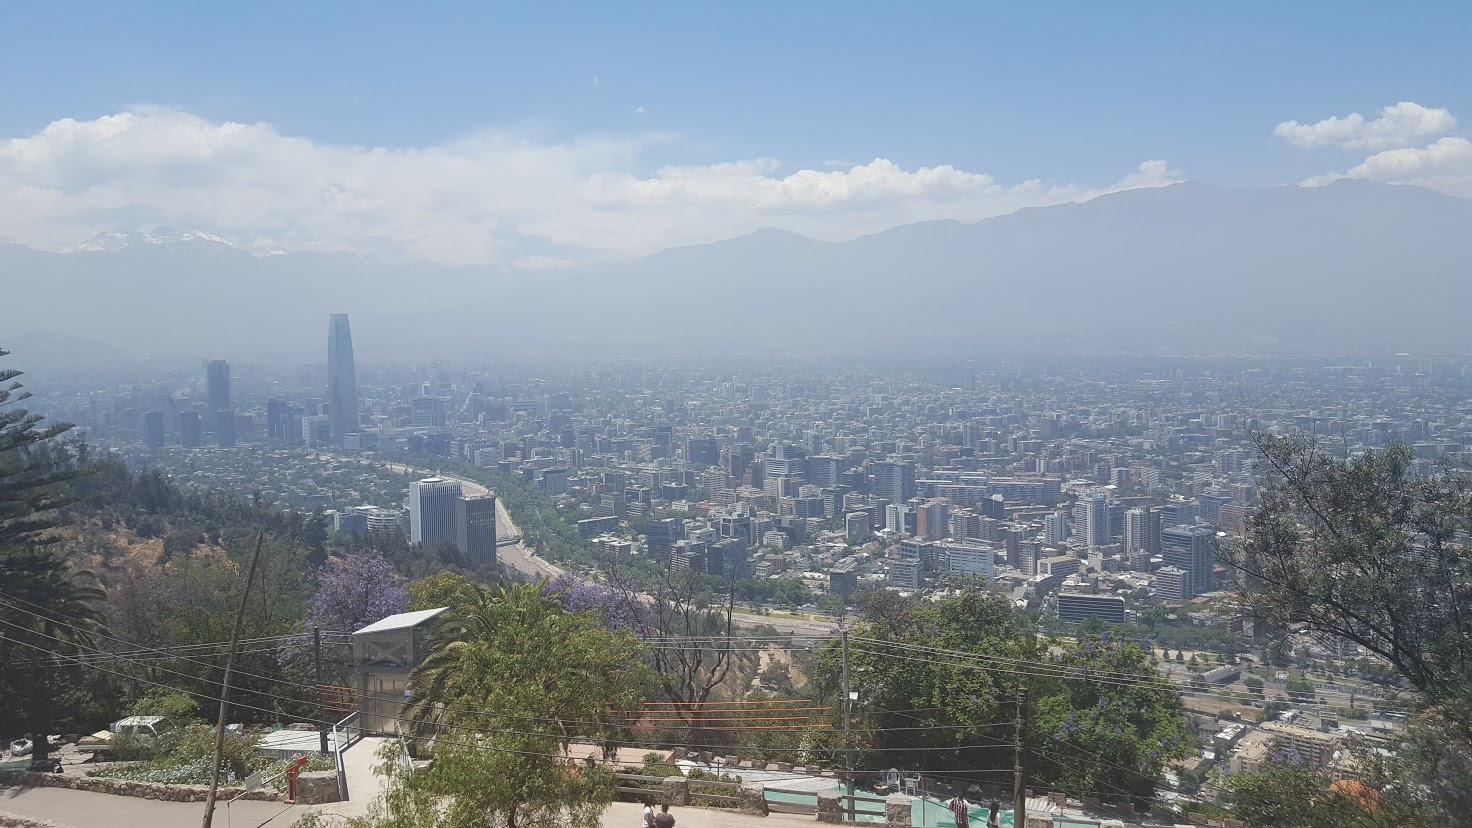 The Andes and Santiago. Soft focus added by the smog